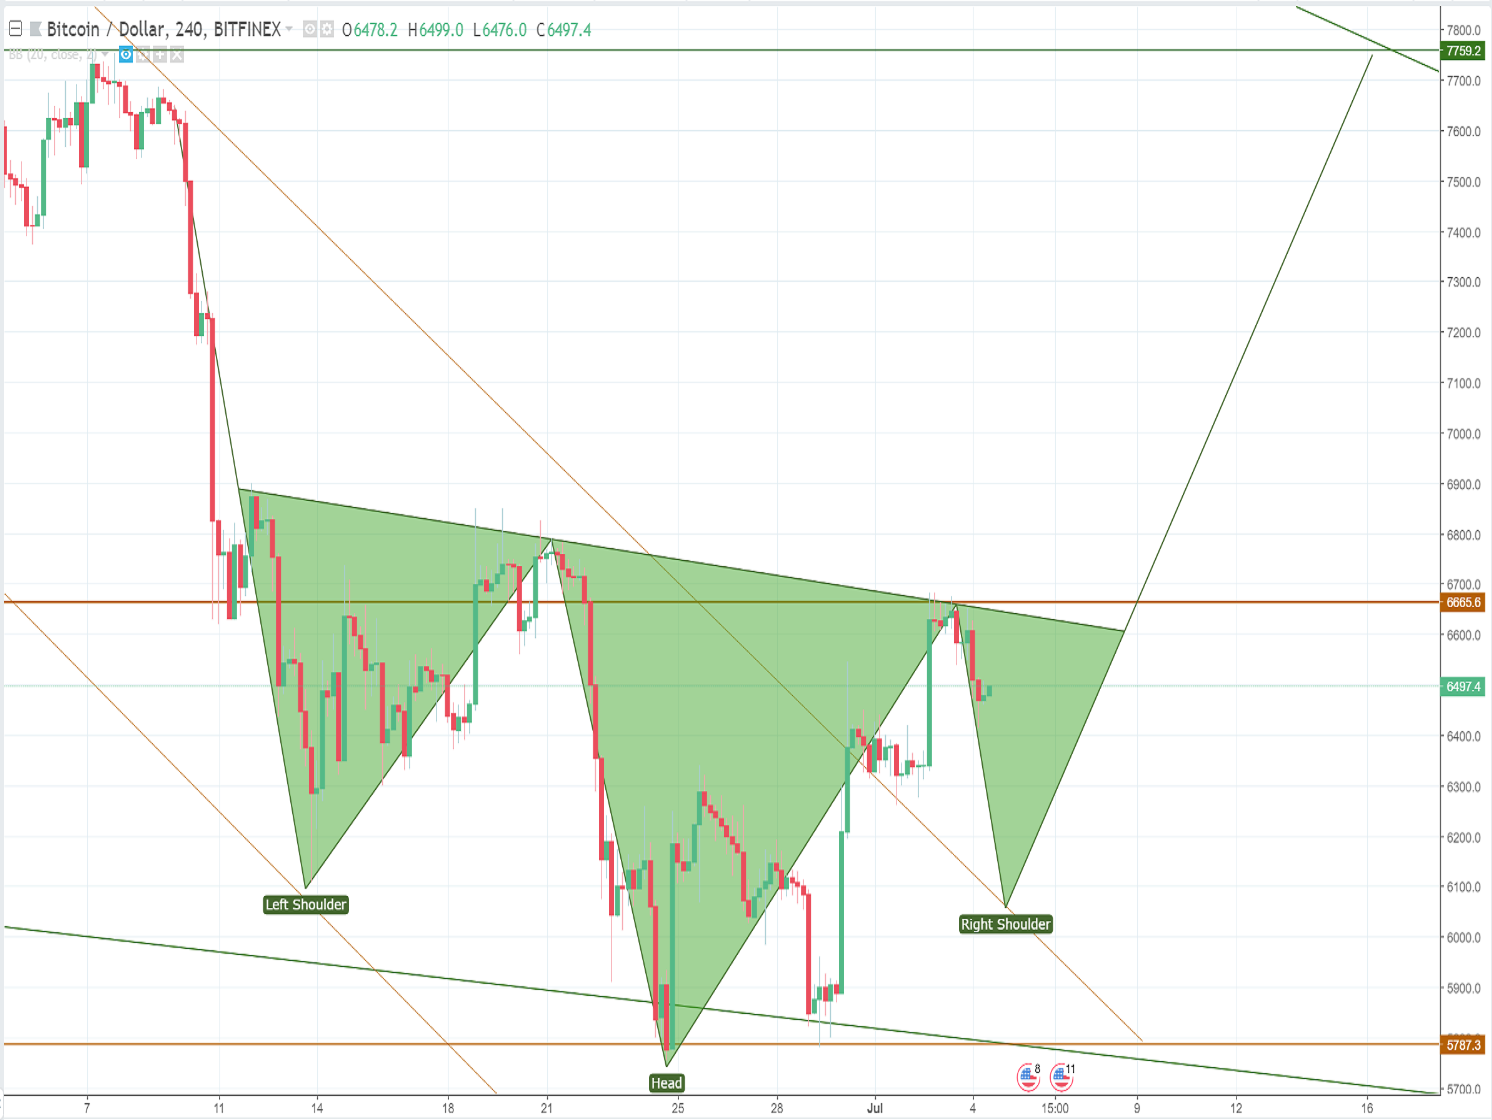 Bitcoin price analysis and forecast (July 4th): $7759 is the next Bitcoin target